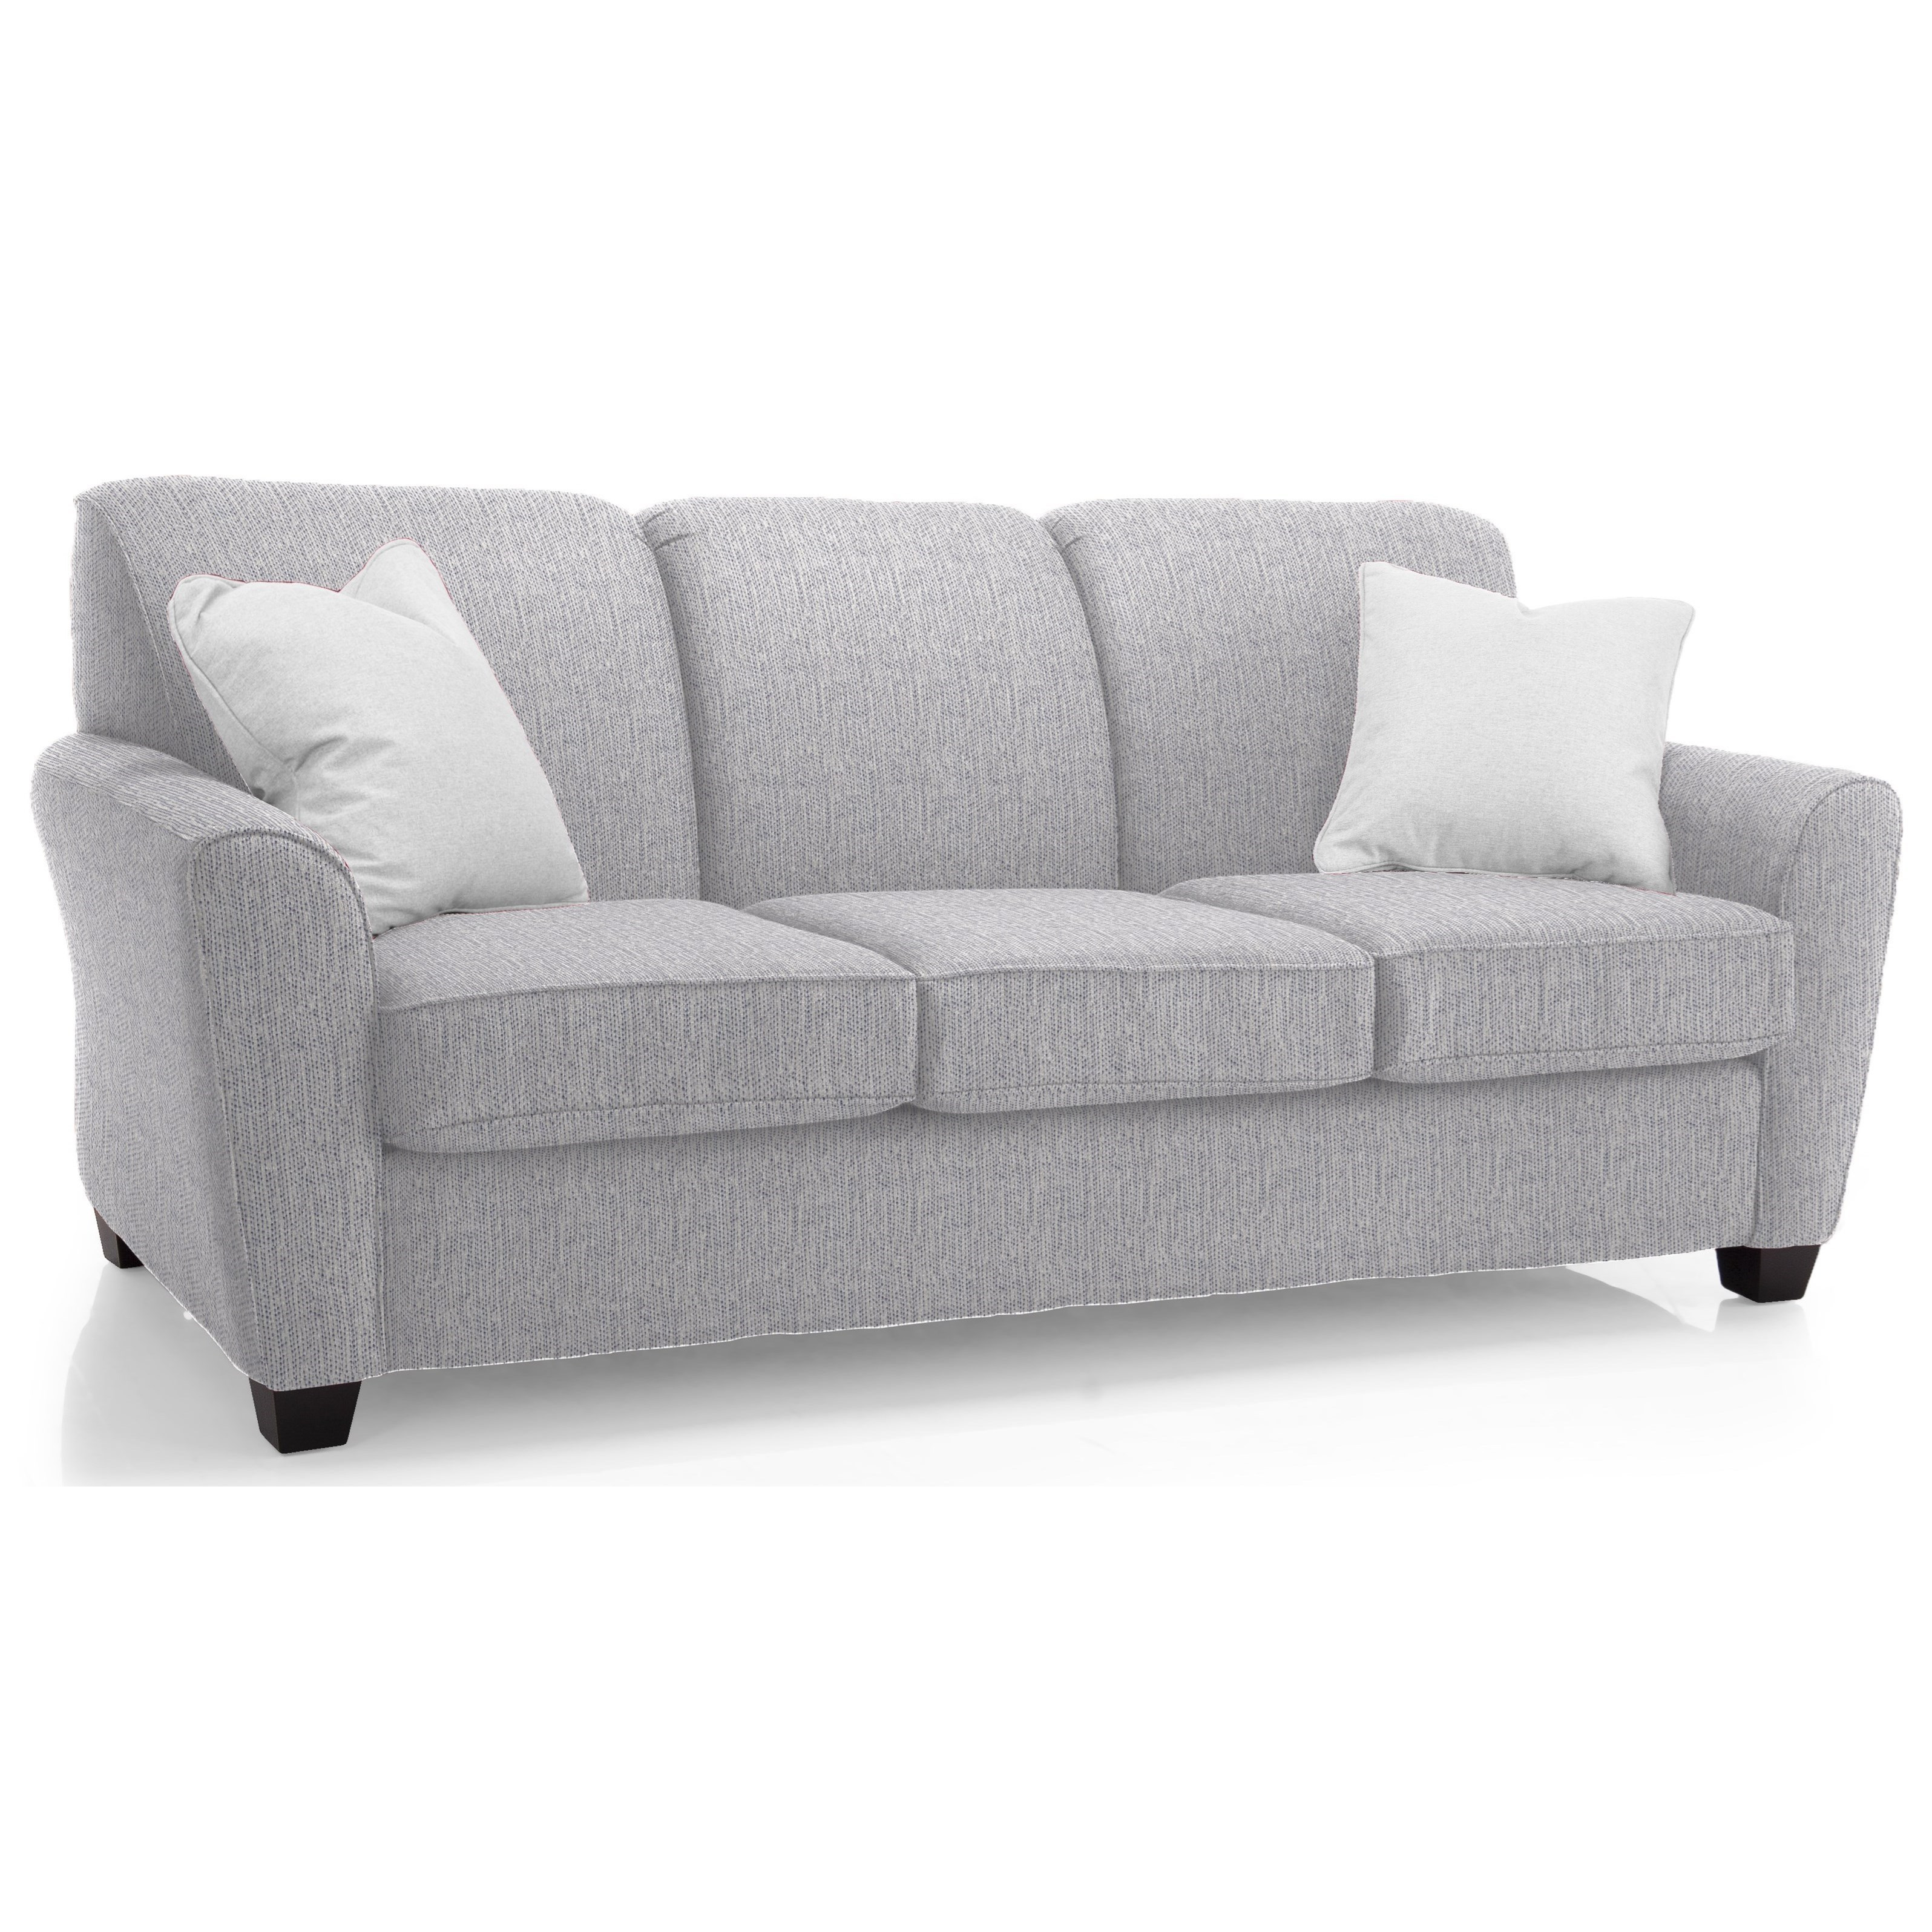 Decor-Rest 2404 Transitional Sofa - Item Number: 2404-Sofa-ADRI NAV